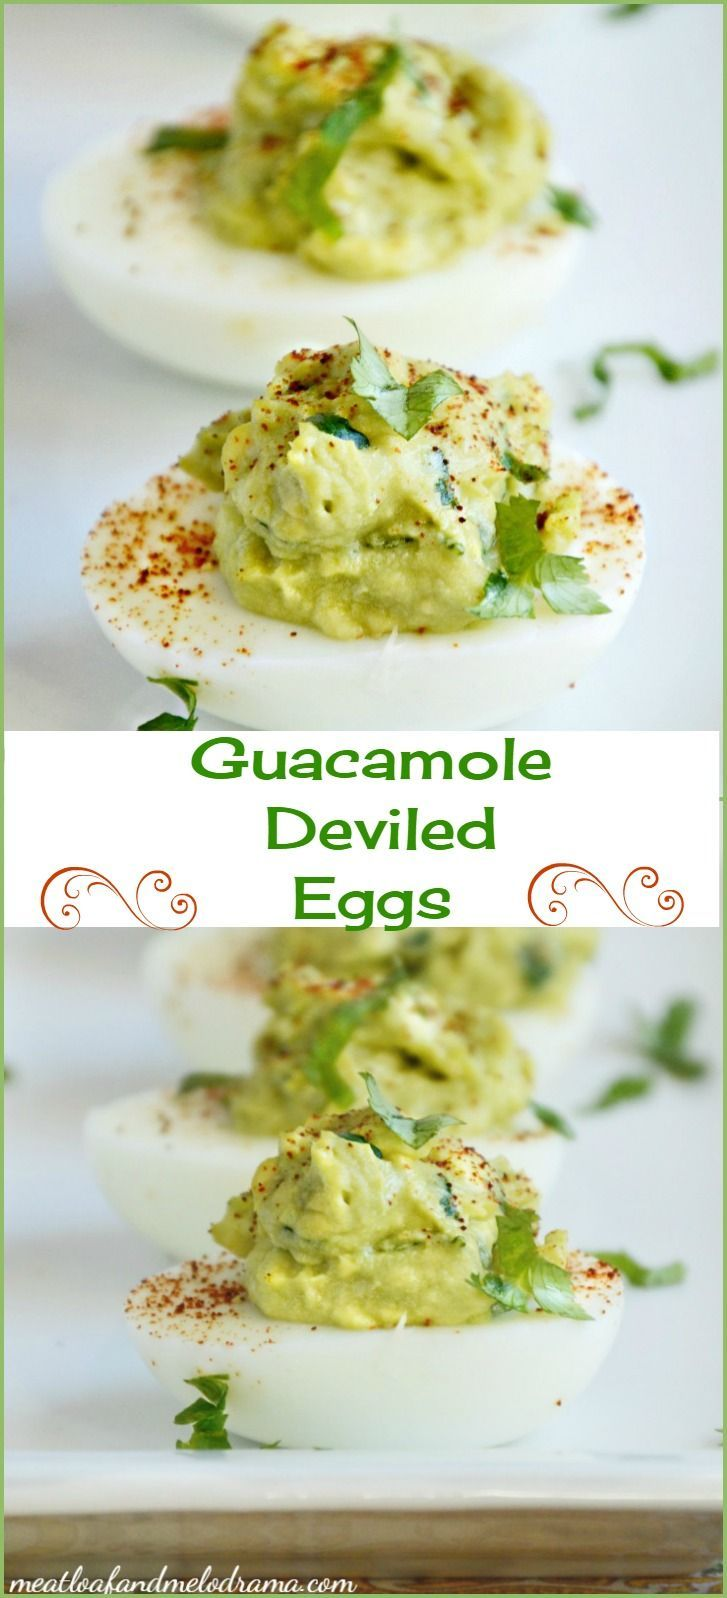 Guacamole Deviled Eggs ~ Made with avocados, not mayo, and sprinkled with chipotle powder for extra spice. Perfect for Easter, picnics, parties or a tasty snack or appetizer any day! Great way to use up those hard boiled eggs!